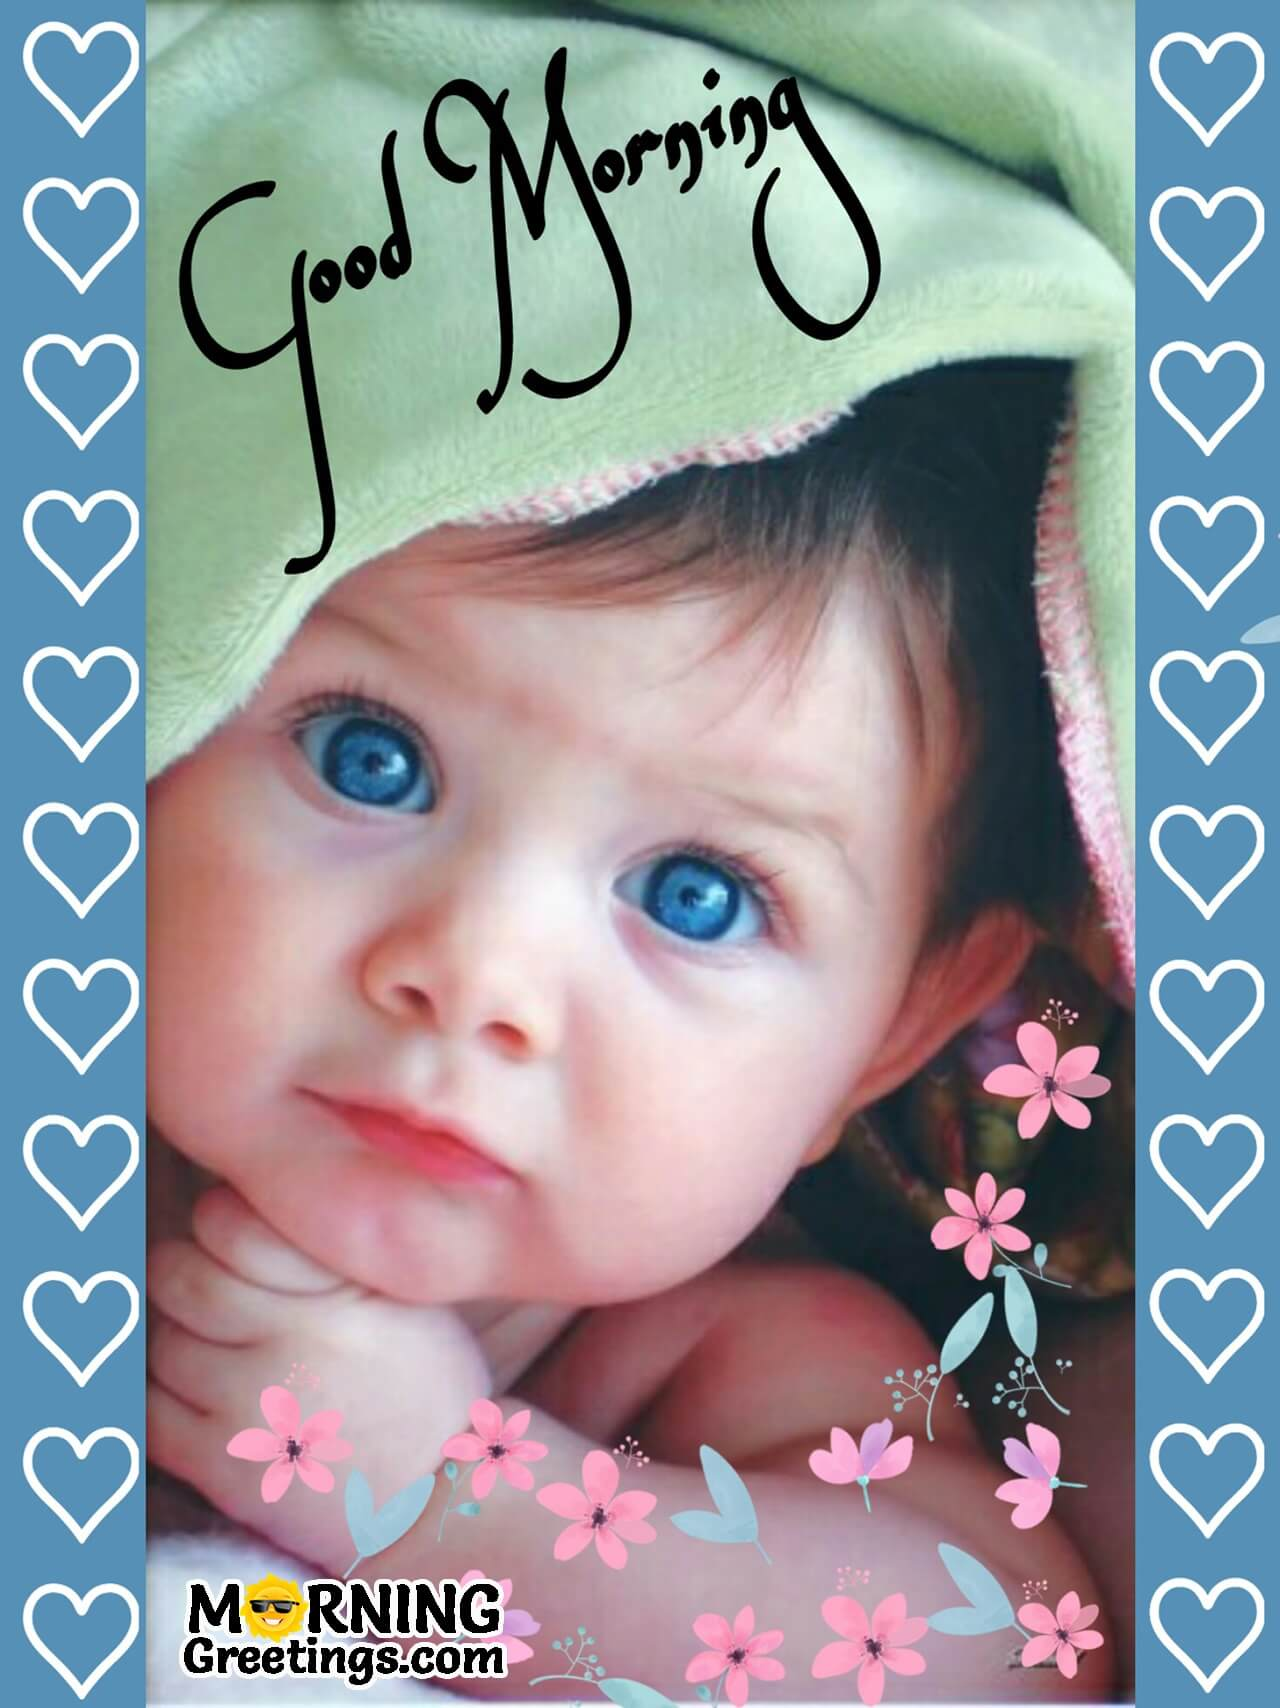 Good Morning Baby Quotes : morning, quotes, Morning, Images, Babies, Greetings, Quotes, Wishes